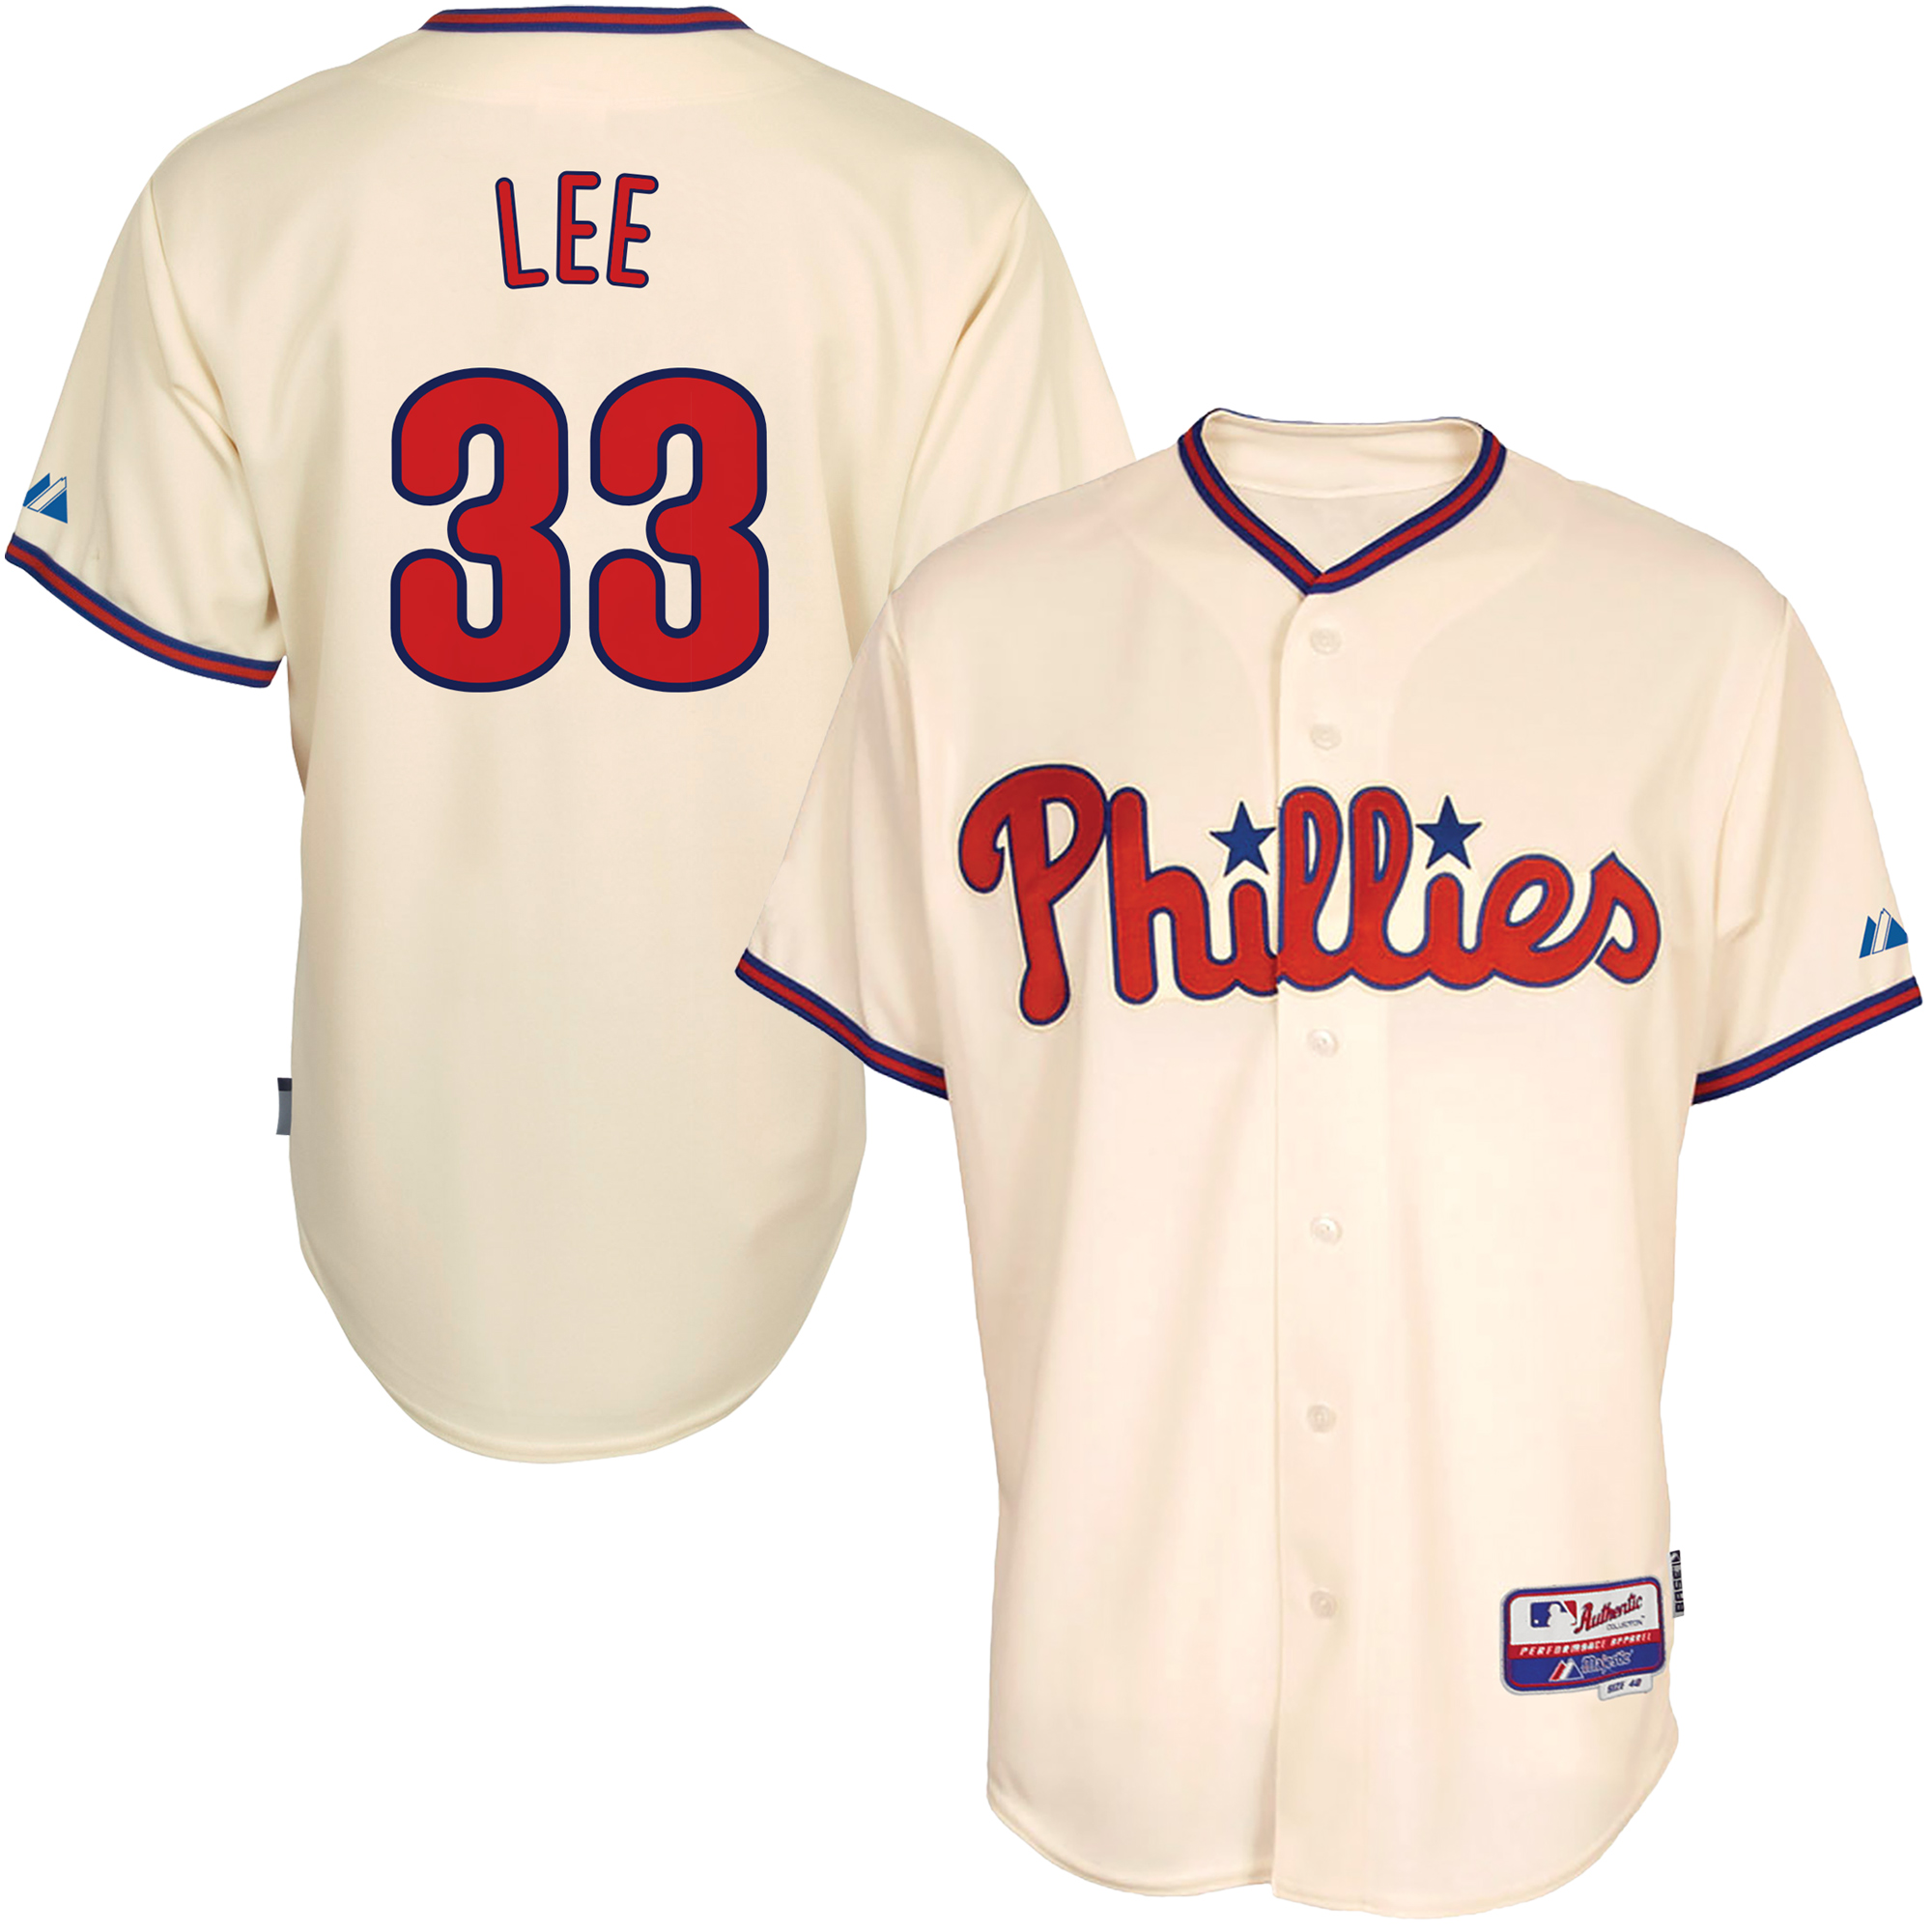 Cliff Lee Philadelphia Phillies Majestic Alternate 6300 Player Authentic Jersey - Tan